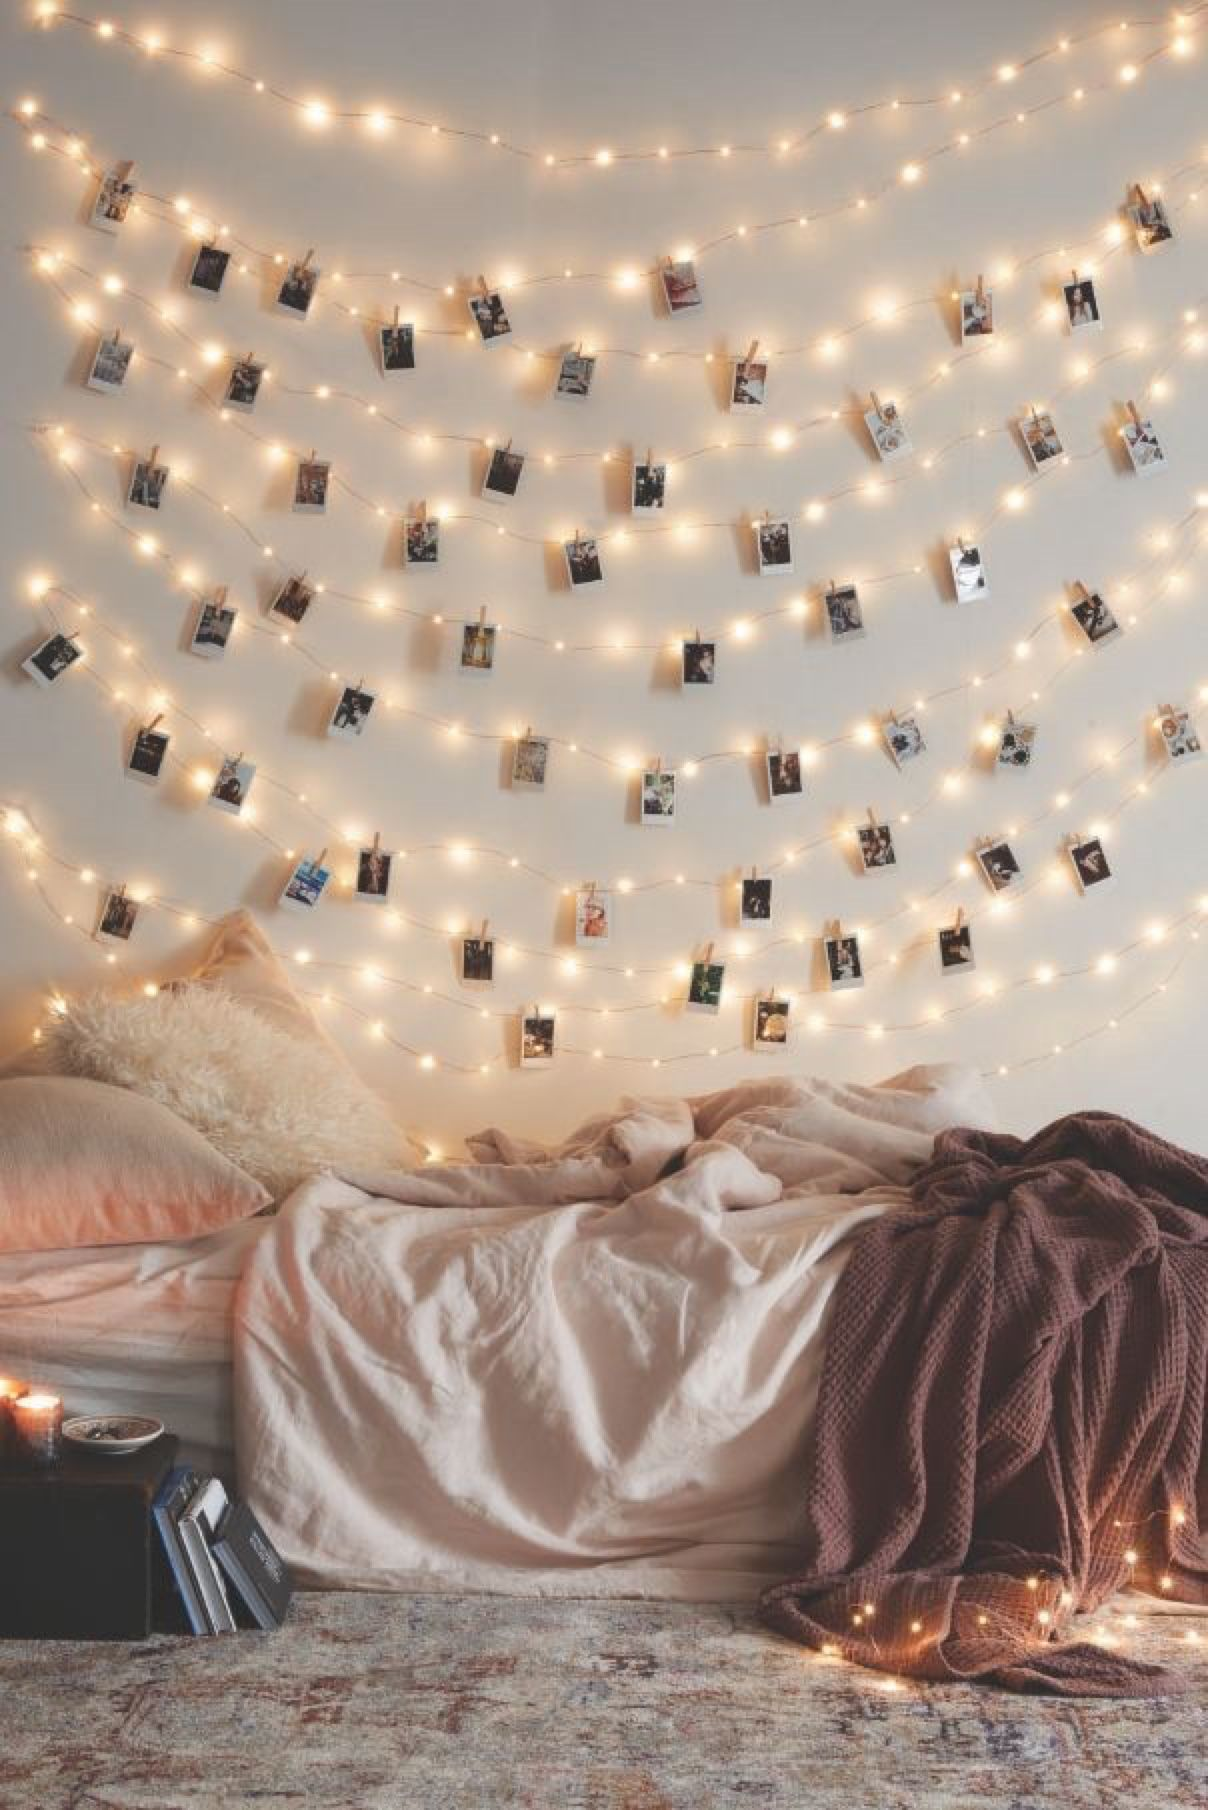 Tumblr bedrooms with lights -  Teen Rooms Tumblr Bedroomchild